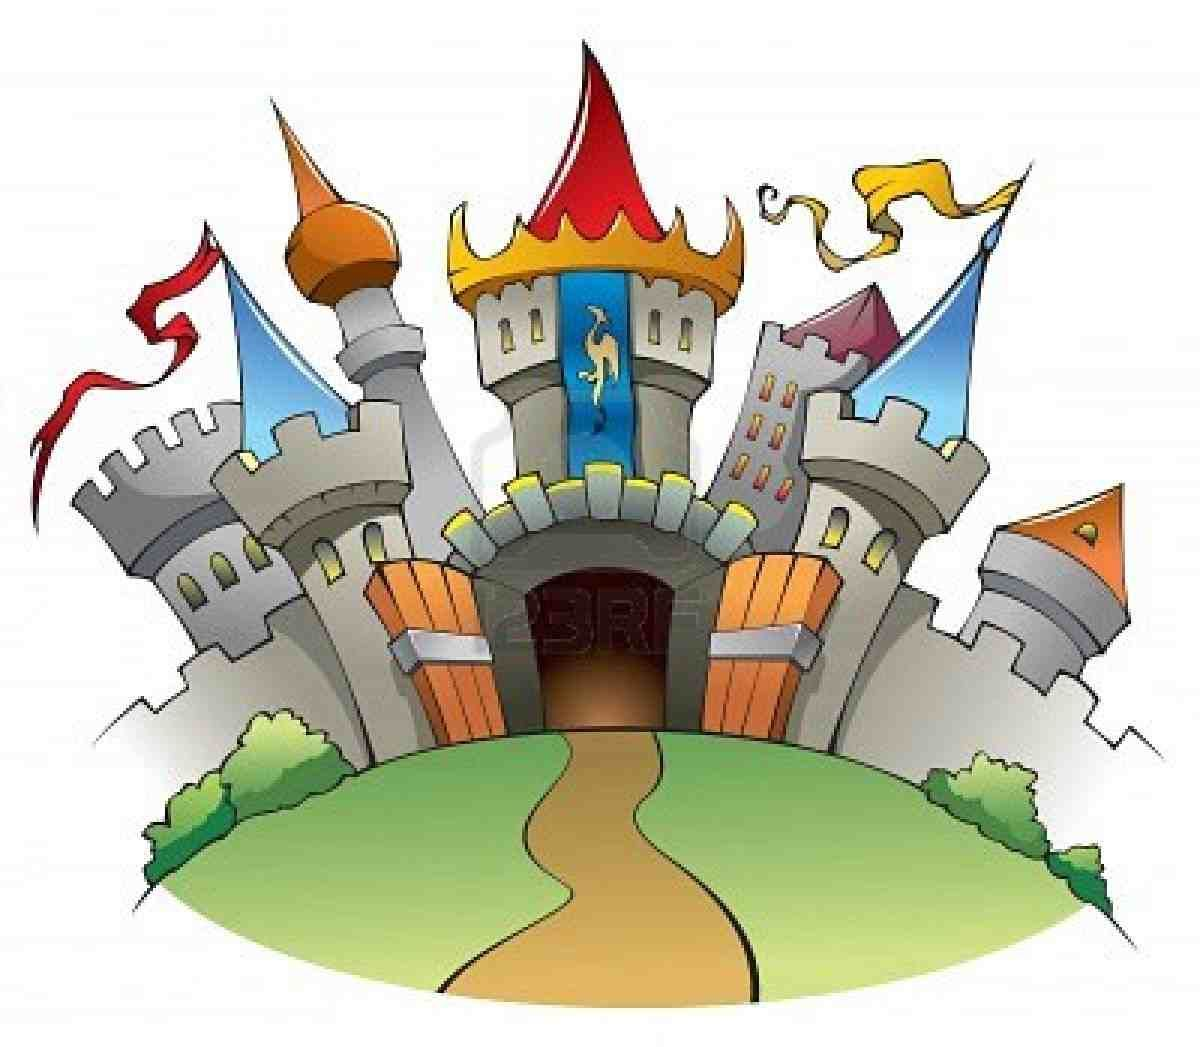 Castle pictures best meseorsz. Fairytale clipart